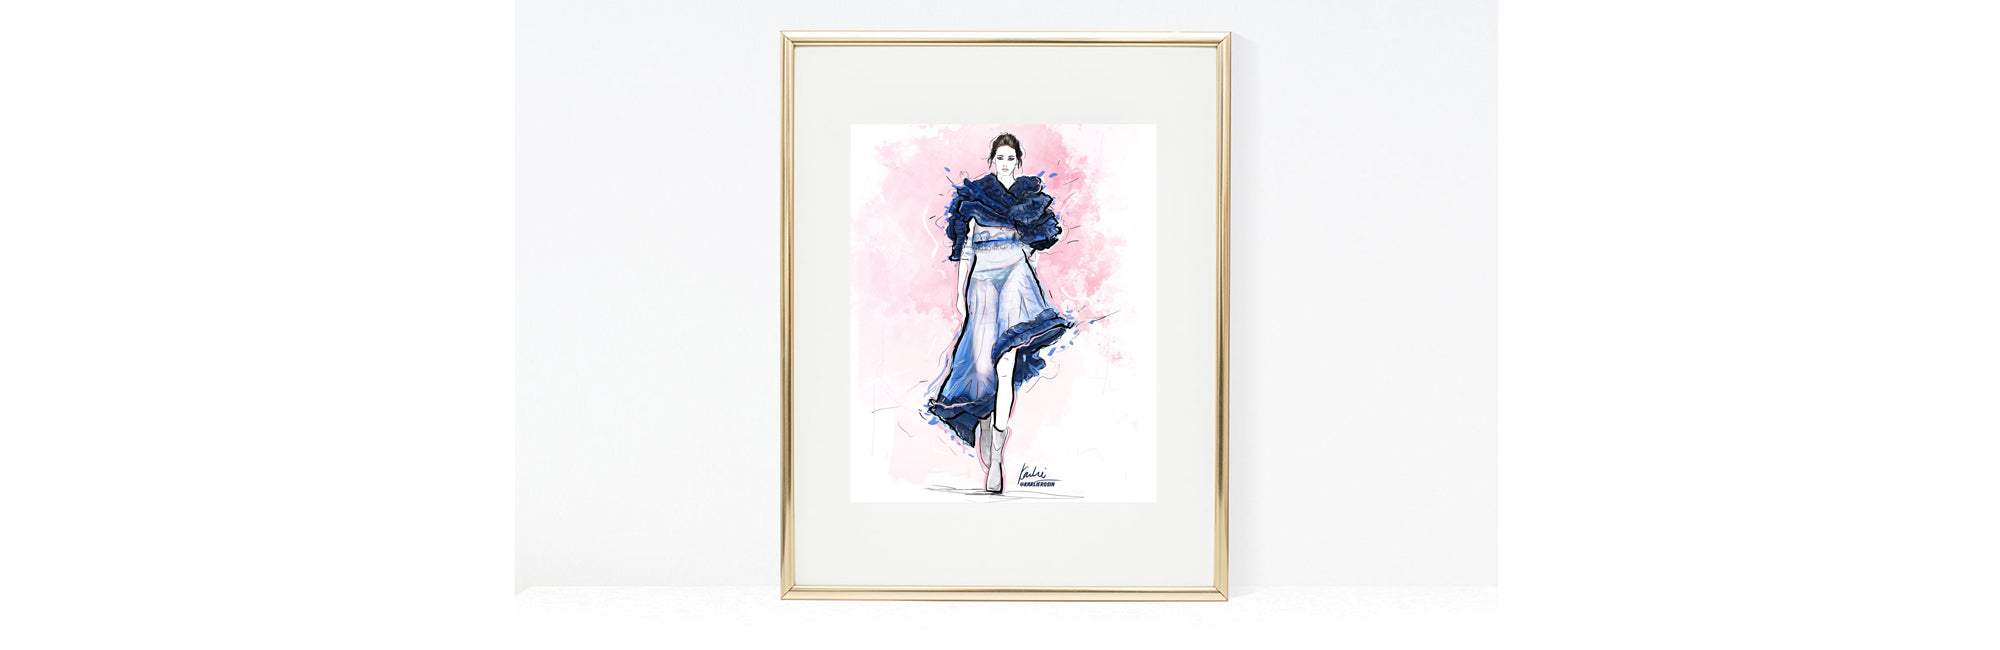 Karlie Rosin creates custom fashion illustrations here is an example